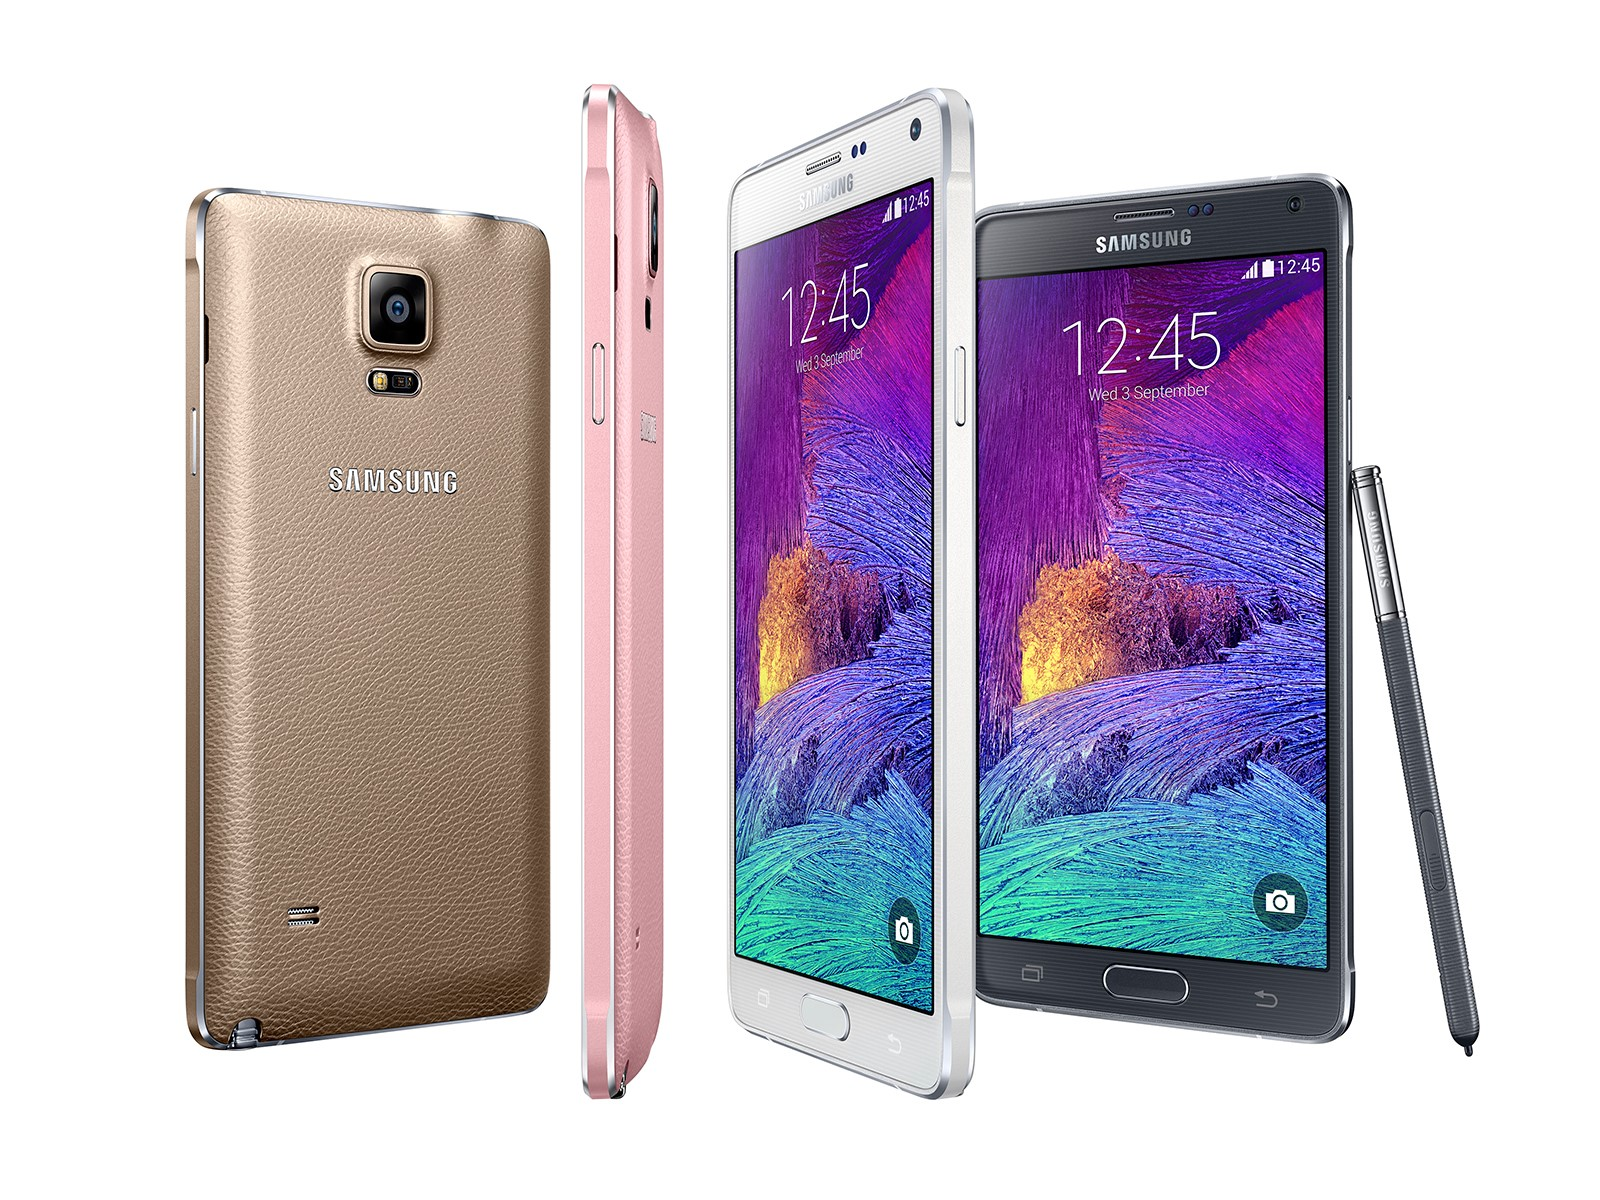 Samsung Galaxy Note 4 Digital Photography Review